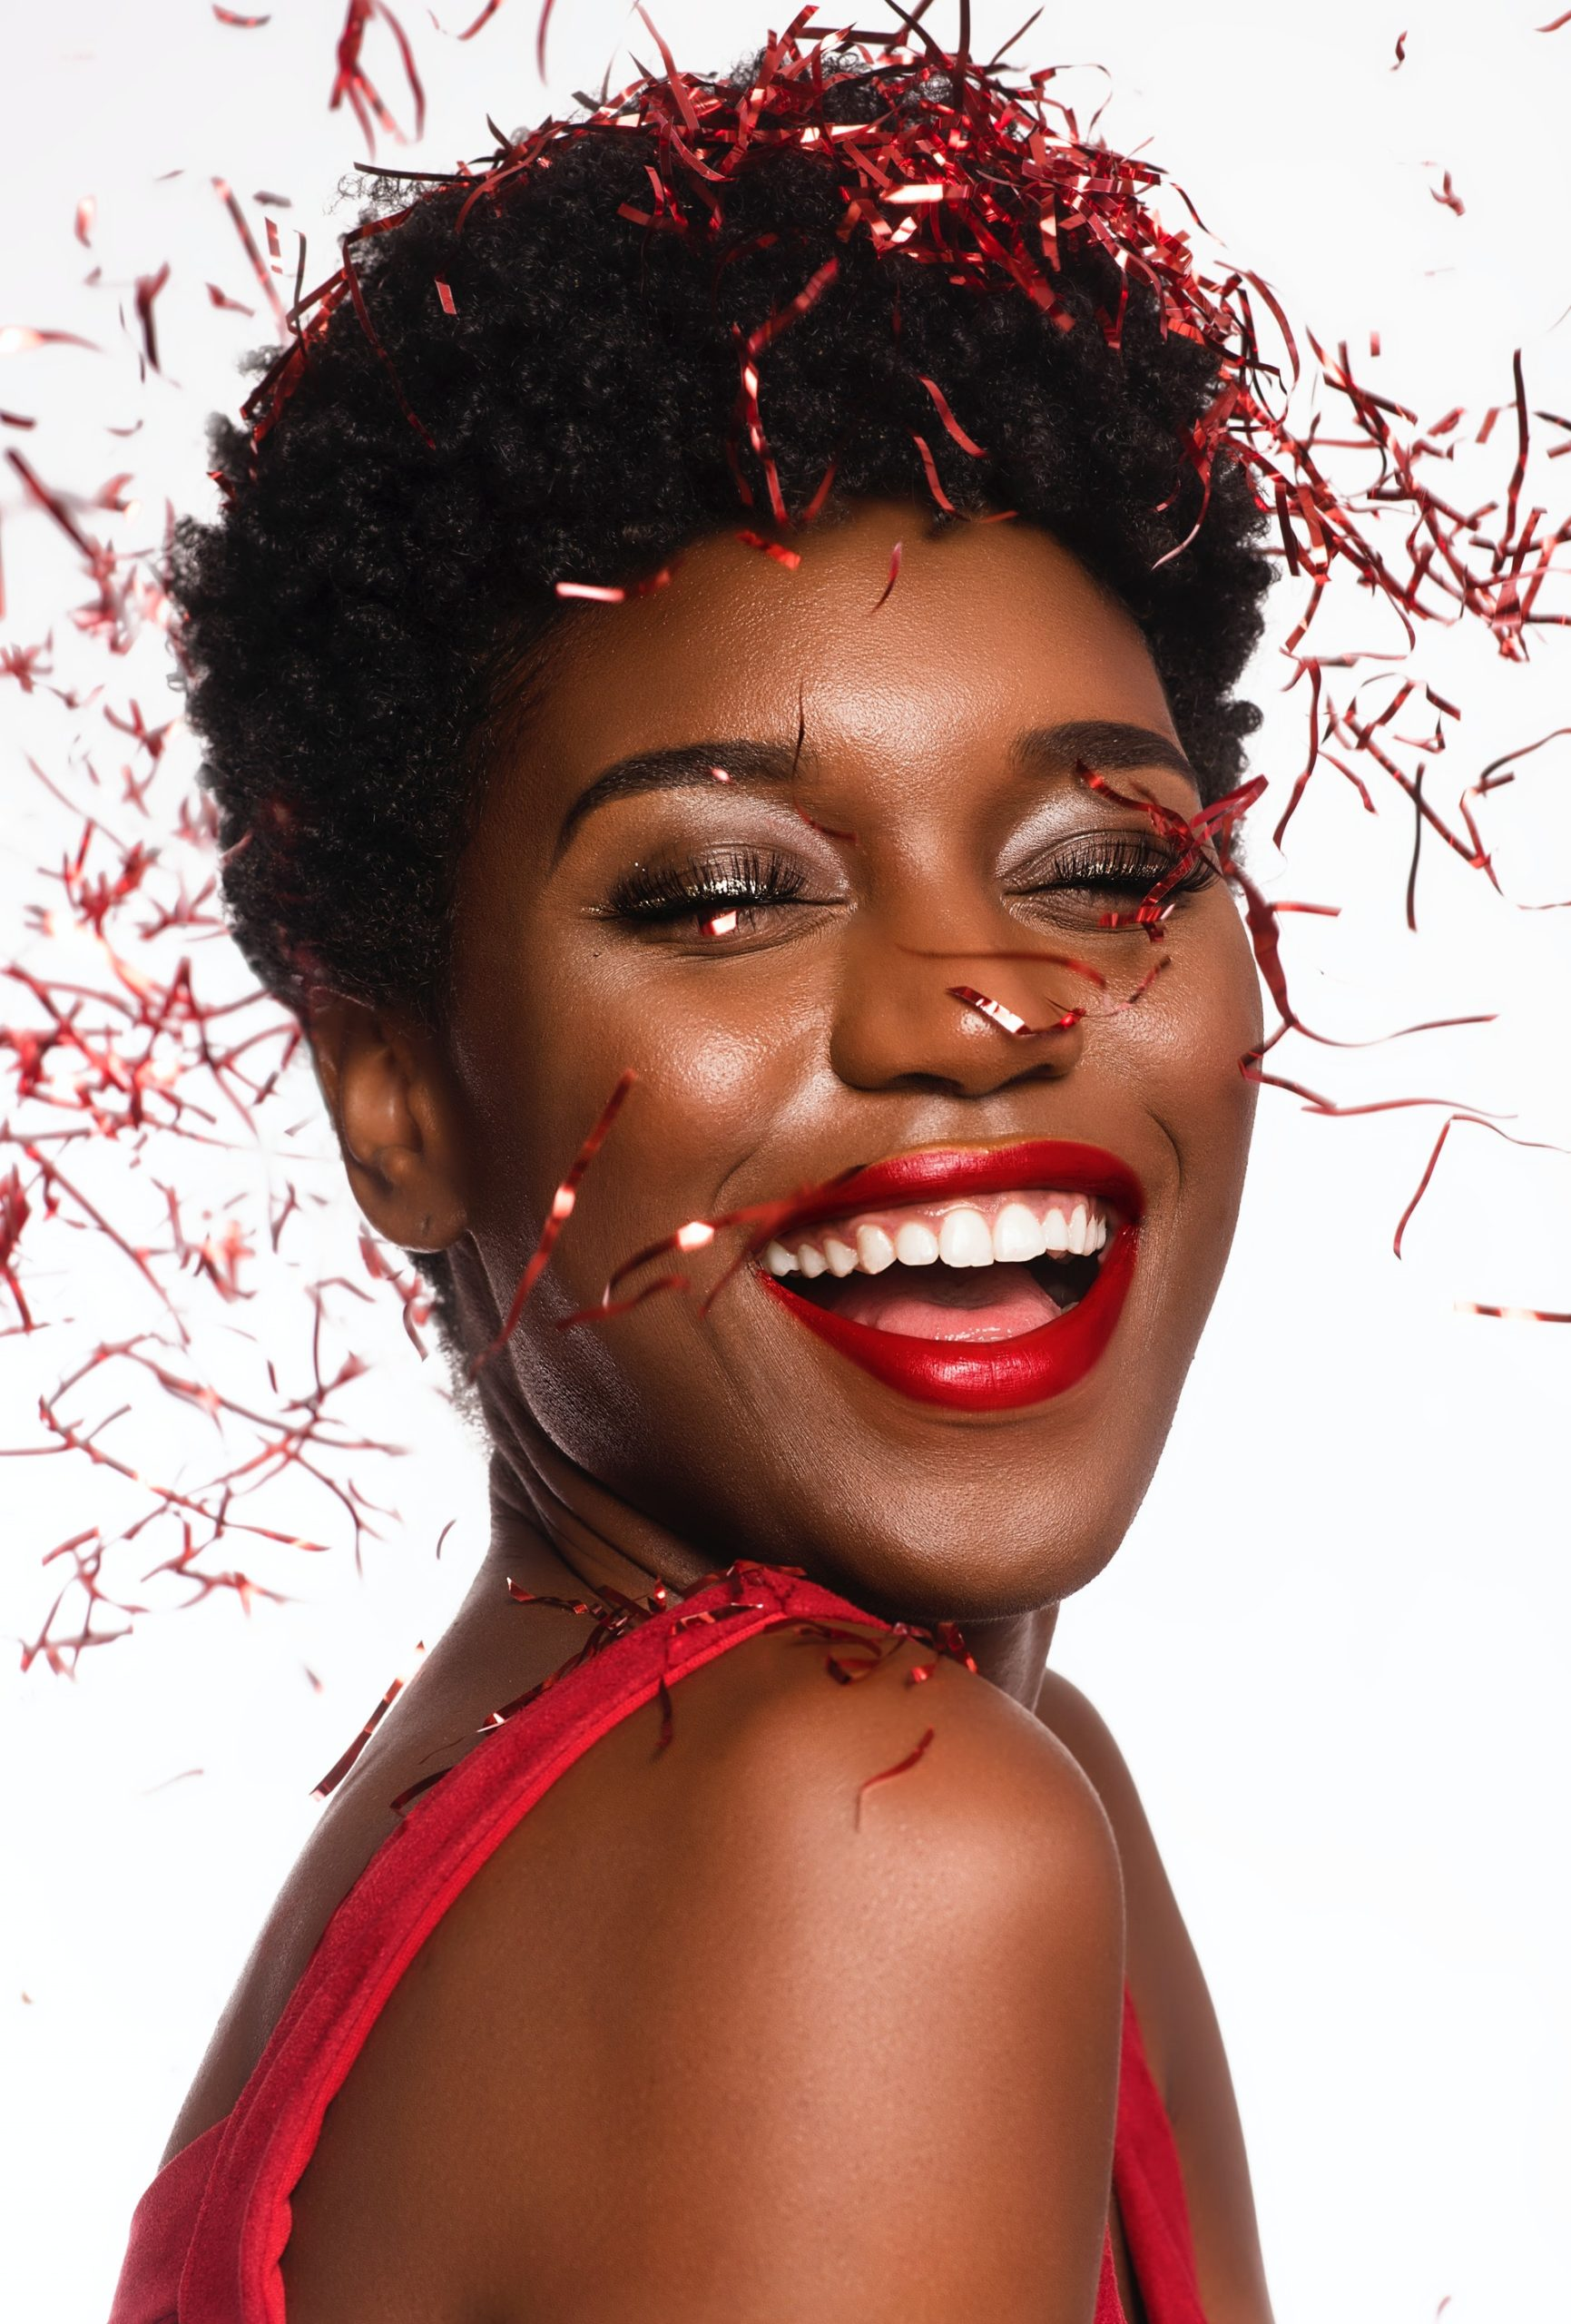 a close-up photo of a happy woman posting as confetti drop down her face